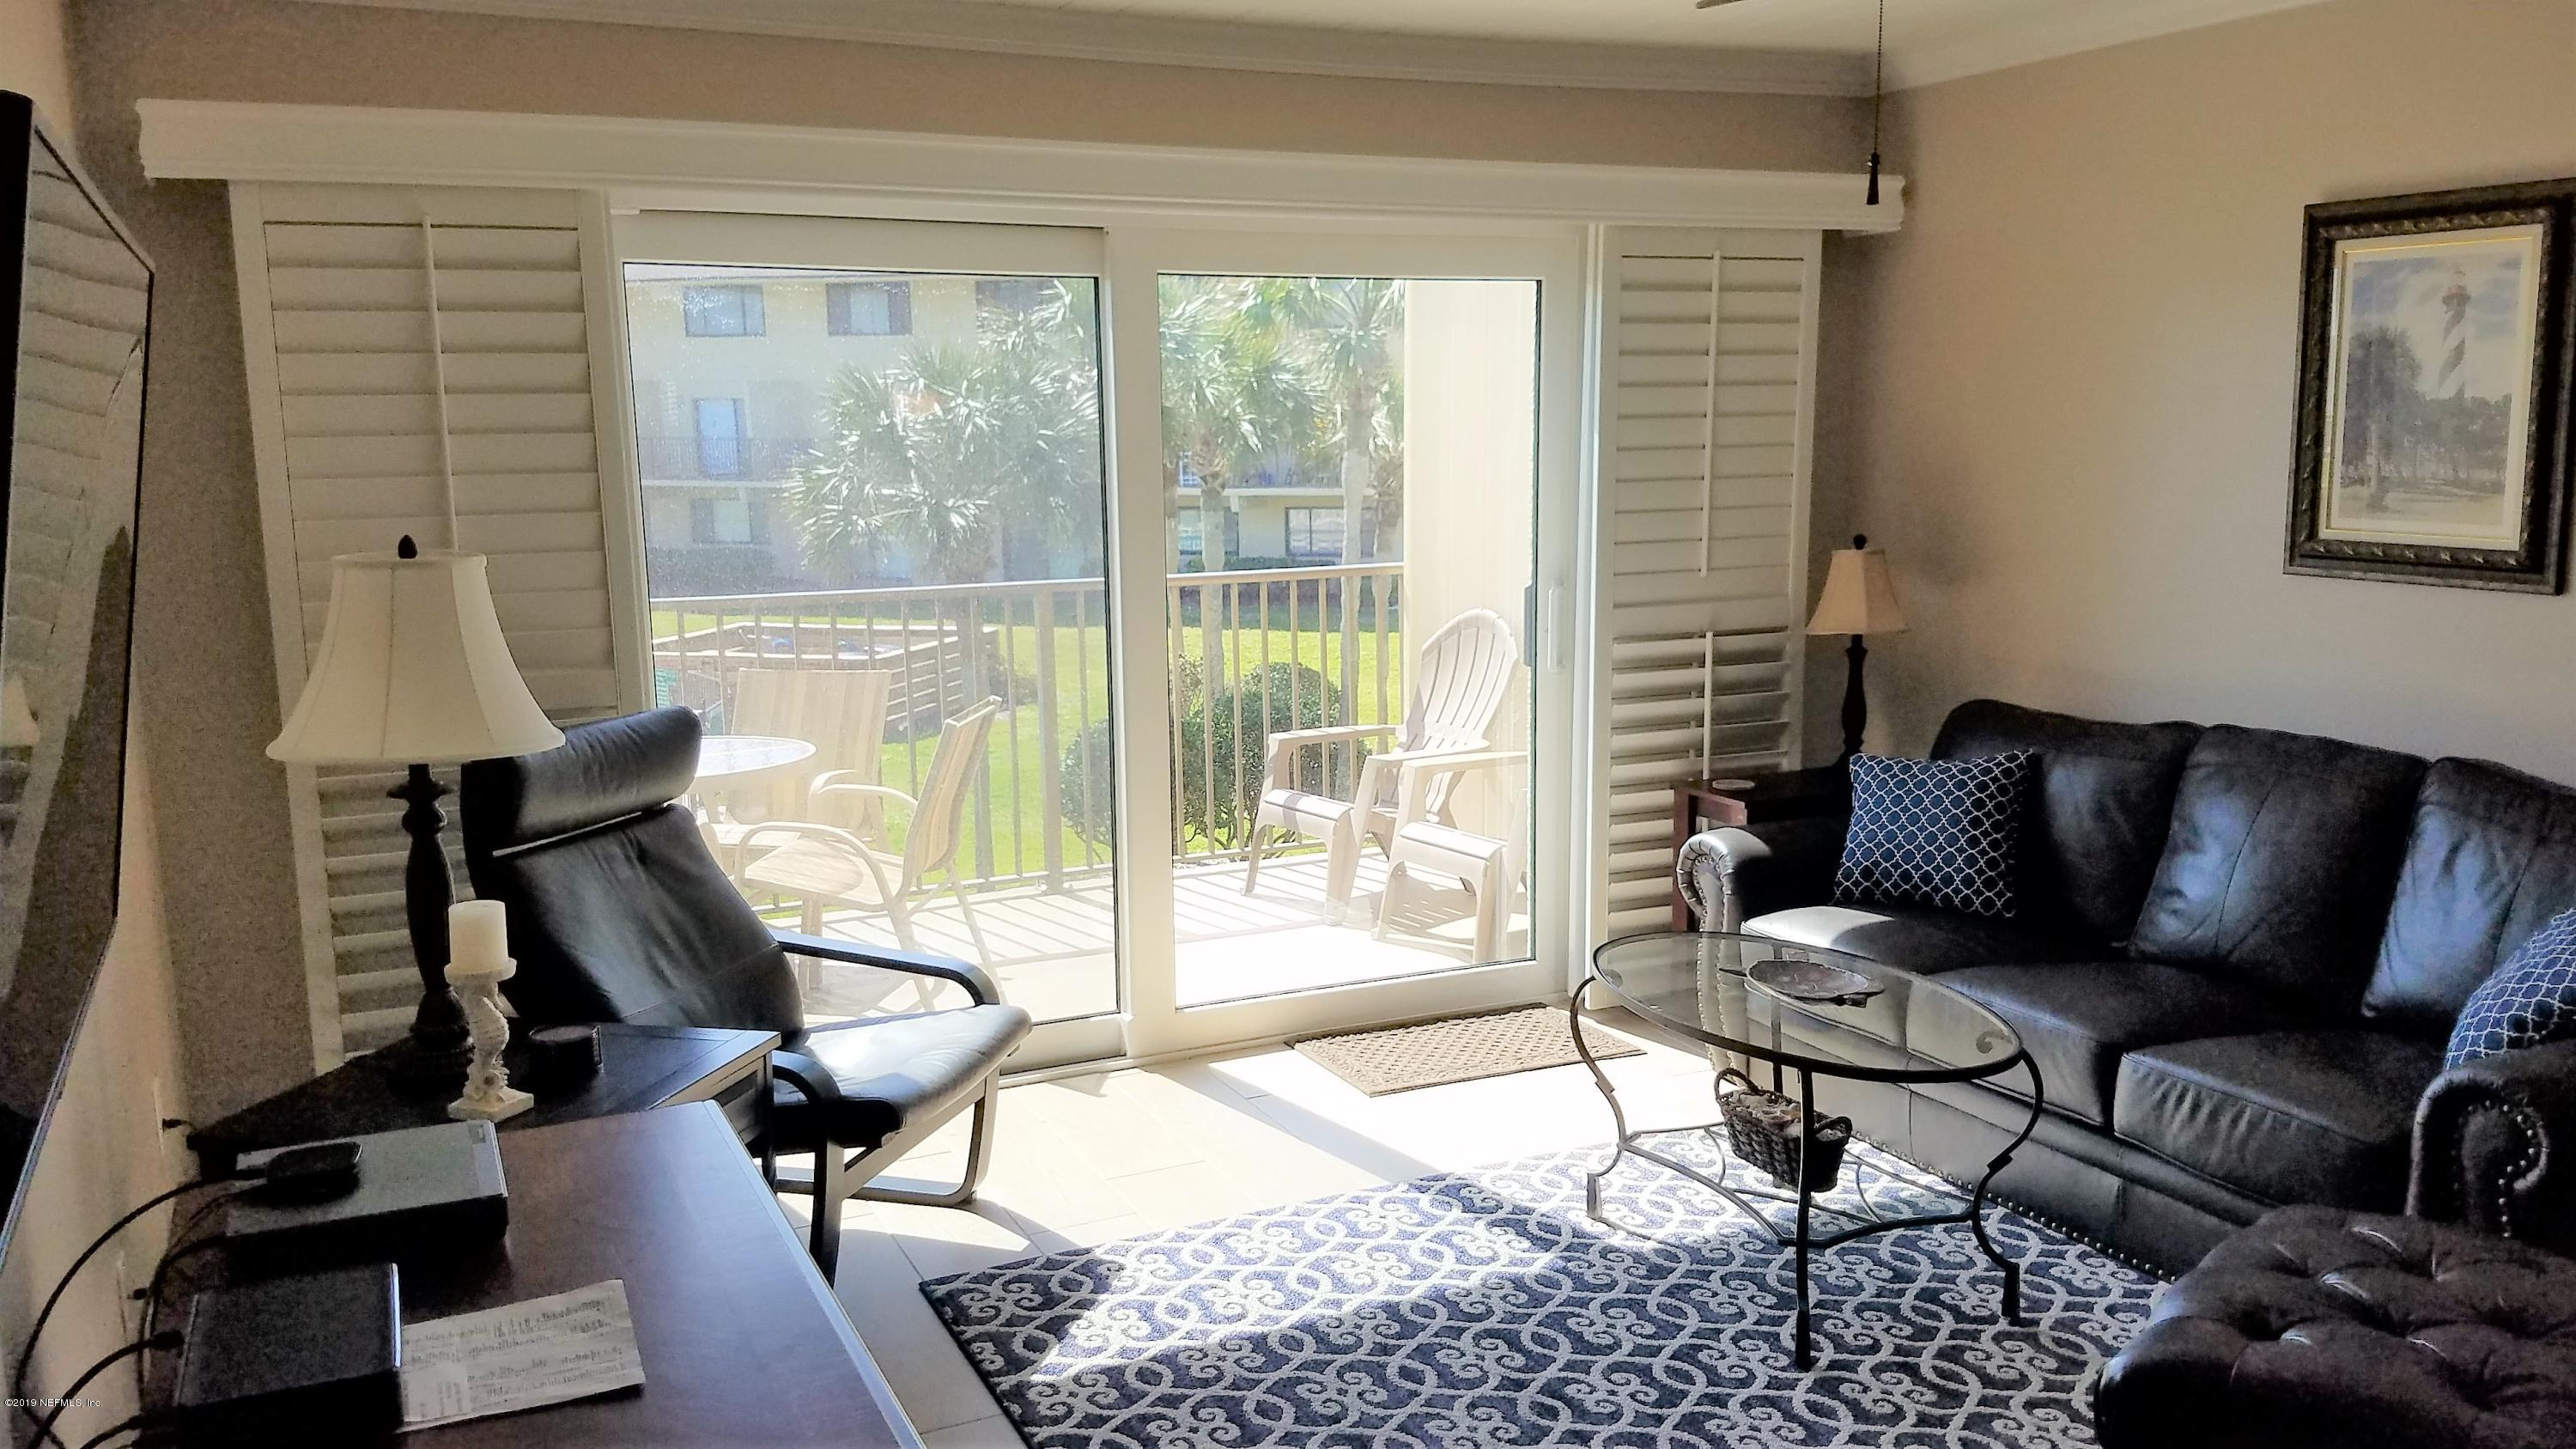 8550 A1A, ST AUGUSTINE, FLORIDA 32080, 2 Bedrooms Bedrooms, ,2 BathroomsBathrooms,Condo,For sale,A1A,988011